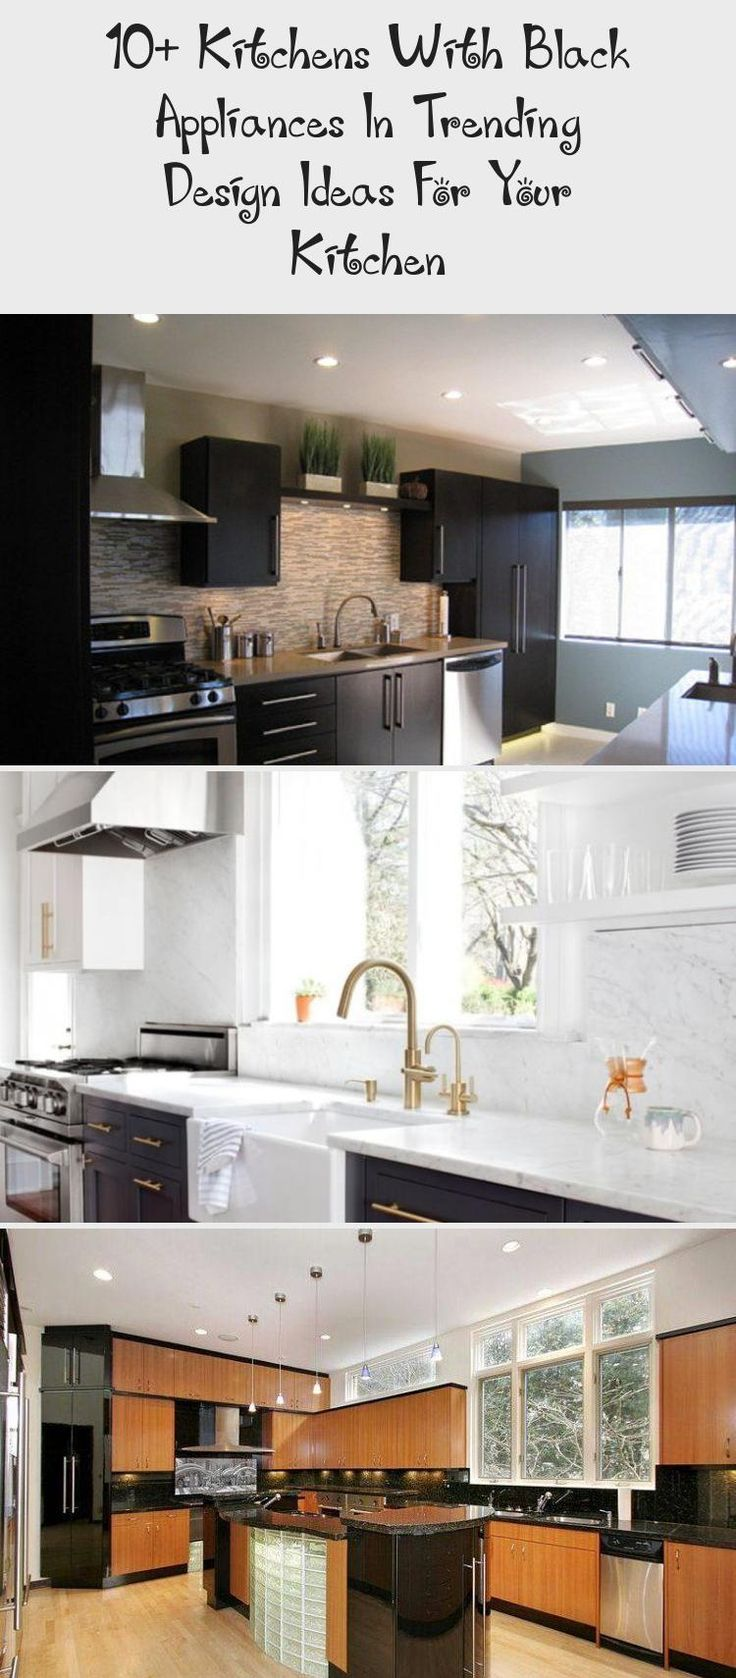 10+ Kitchens with Black Appliances in Trending Design